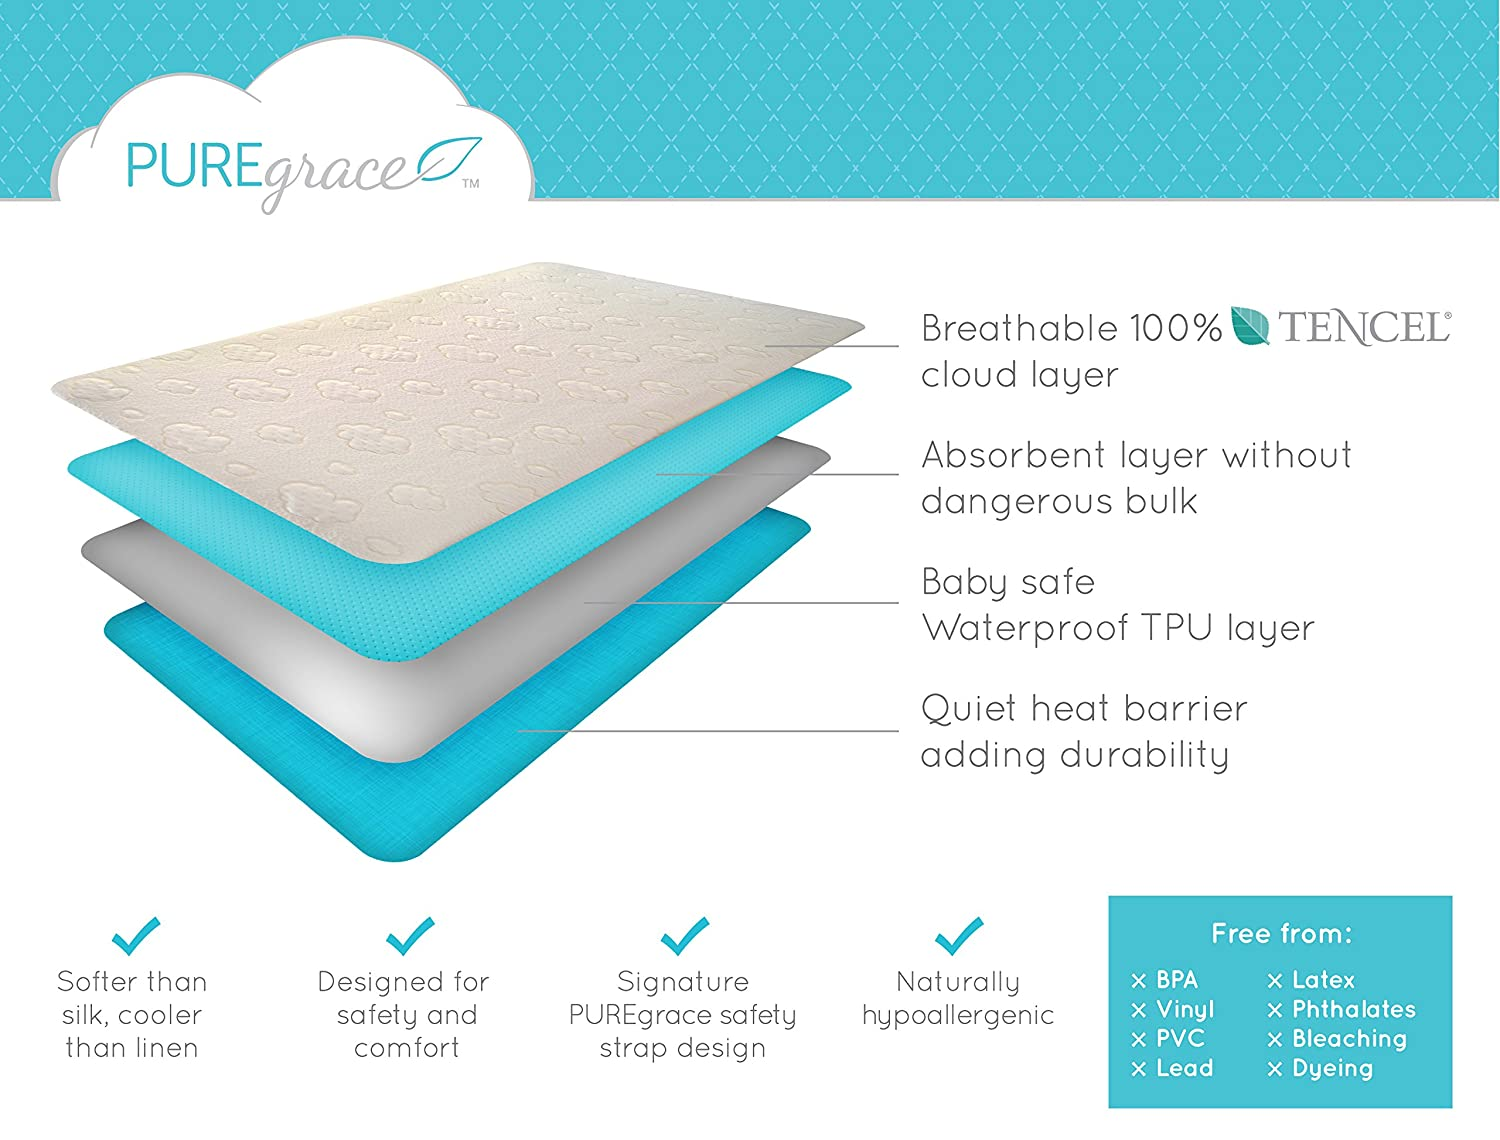 - Soft and Breathable Waterproof Protector Superior To Organic Cotton PUREgrace Crib Mattress Pad Eucalyptus Based Pure Fibers Premium Quality and Hypoallergenic 10 Year Warranty All Natural TENCEL Safe Fitted Comfortable Mattress Cover